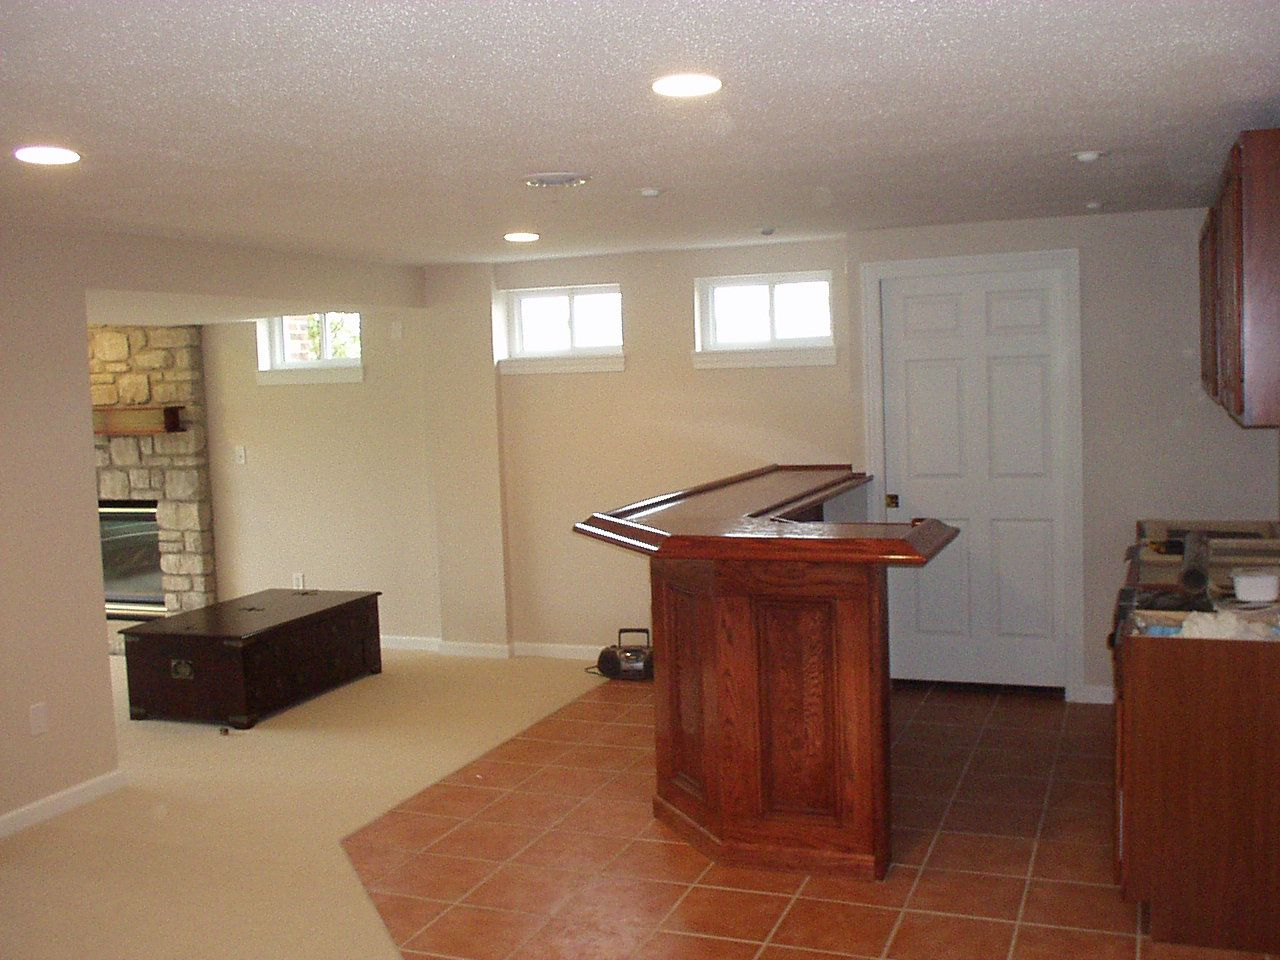 Home Remodeling Denver Co Minimalist Basement Remodeling Ideas  Basement Design Basement Finishing .